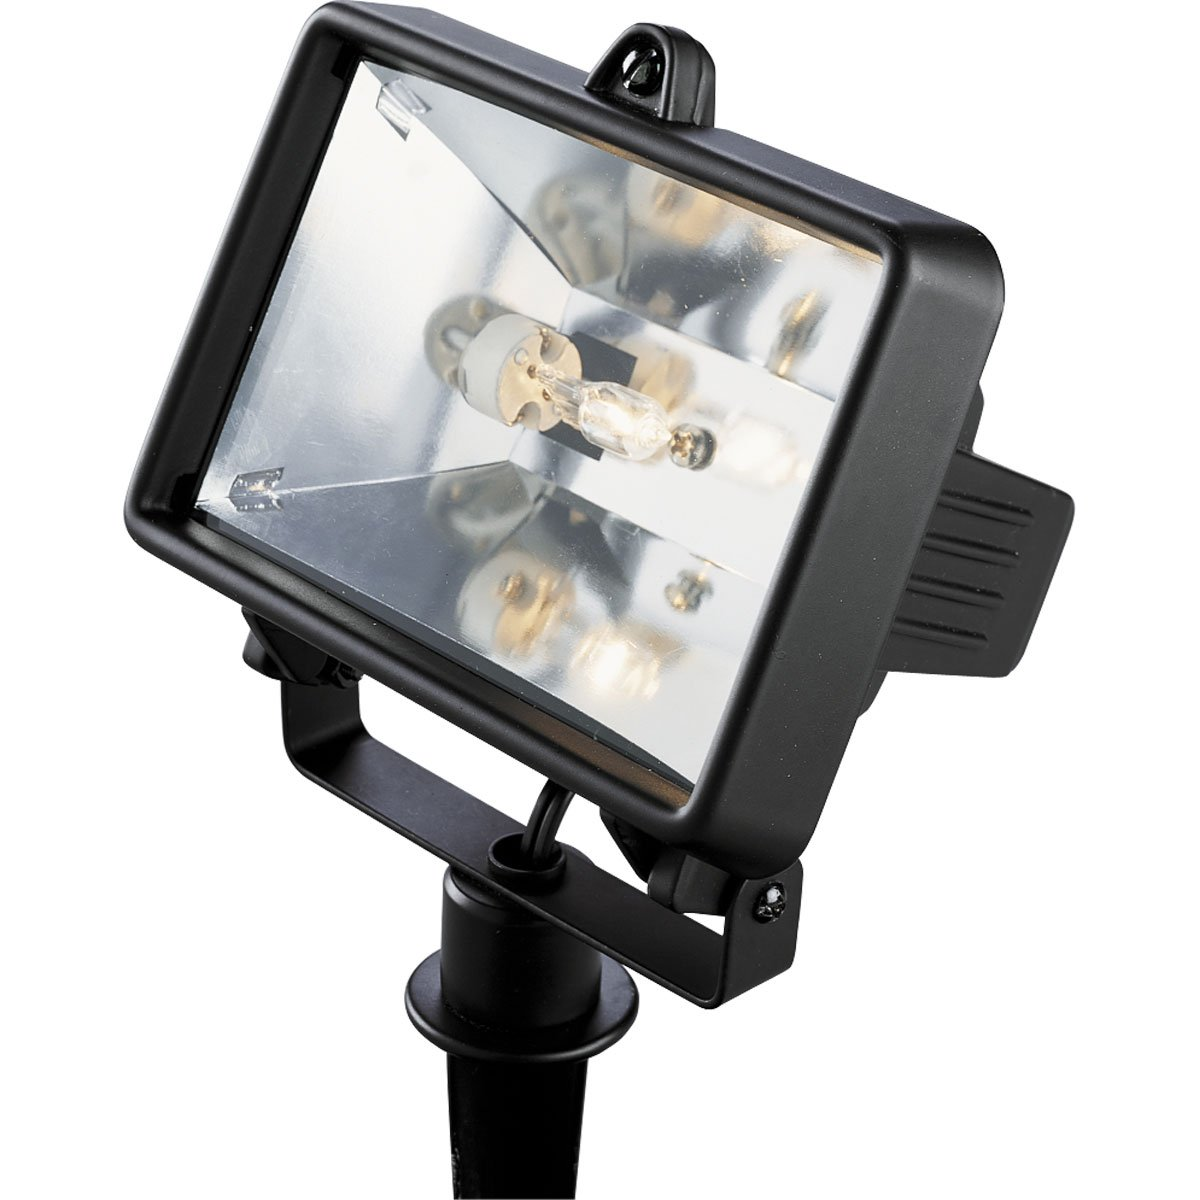 Progress Lighting P5239-31WB 12 Volt Bi-Pin Die Cast Aluminum Flood Light That Swivels Up or Down with Powder Coat and Adjustable Hinged Door For Easy Relamping, Black